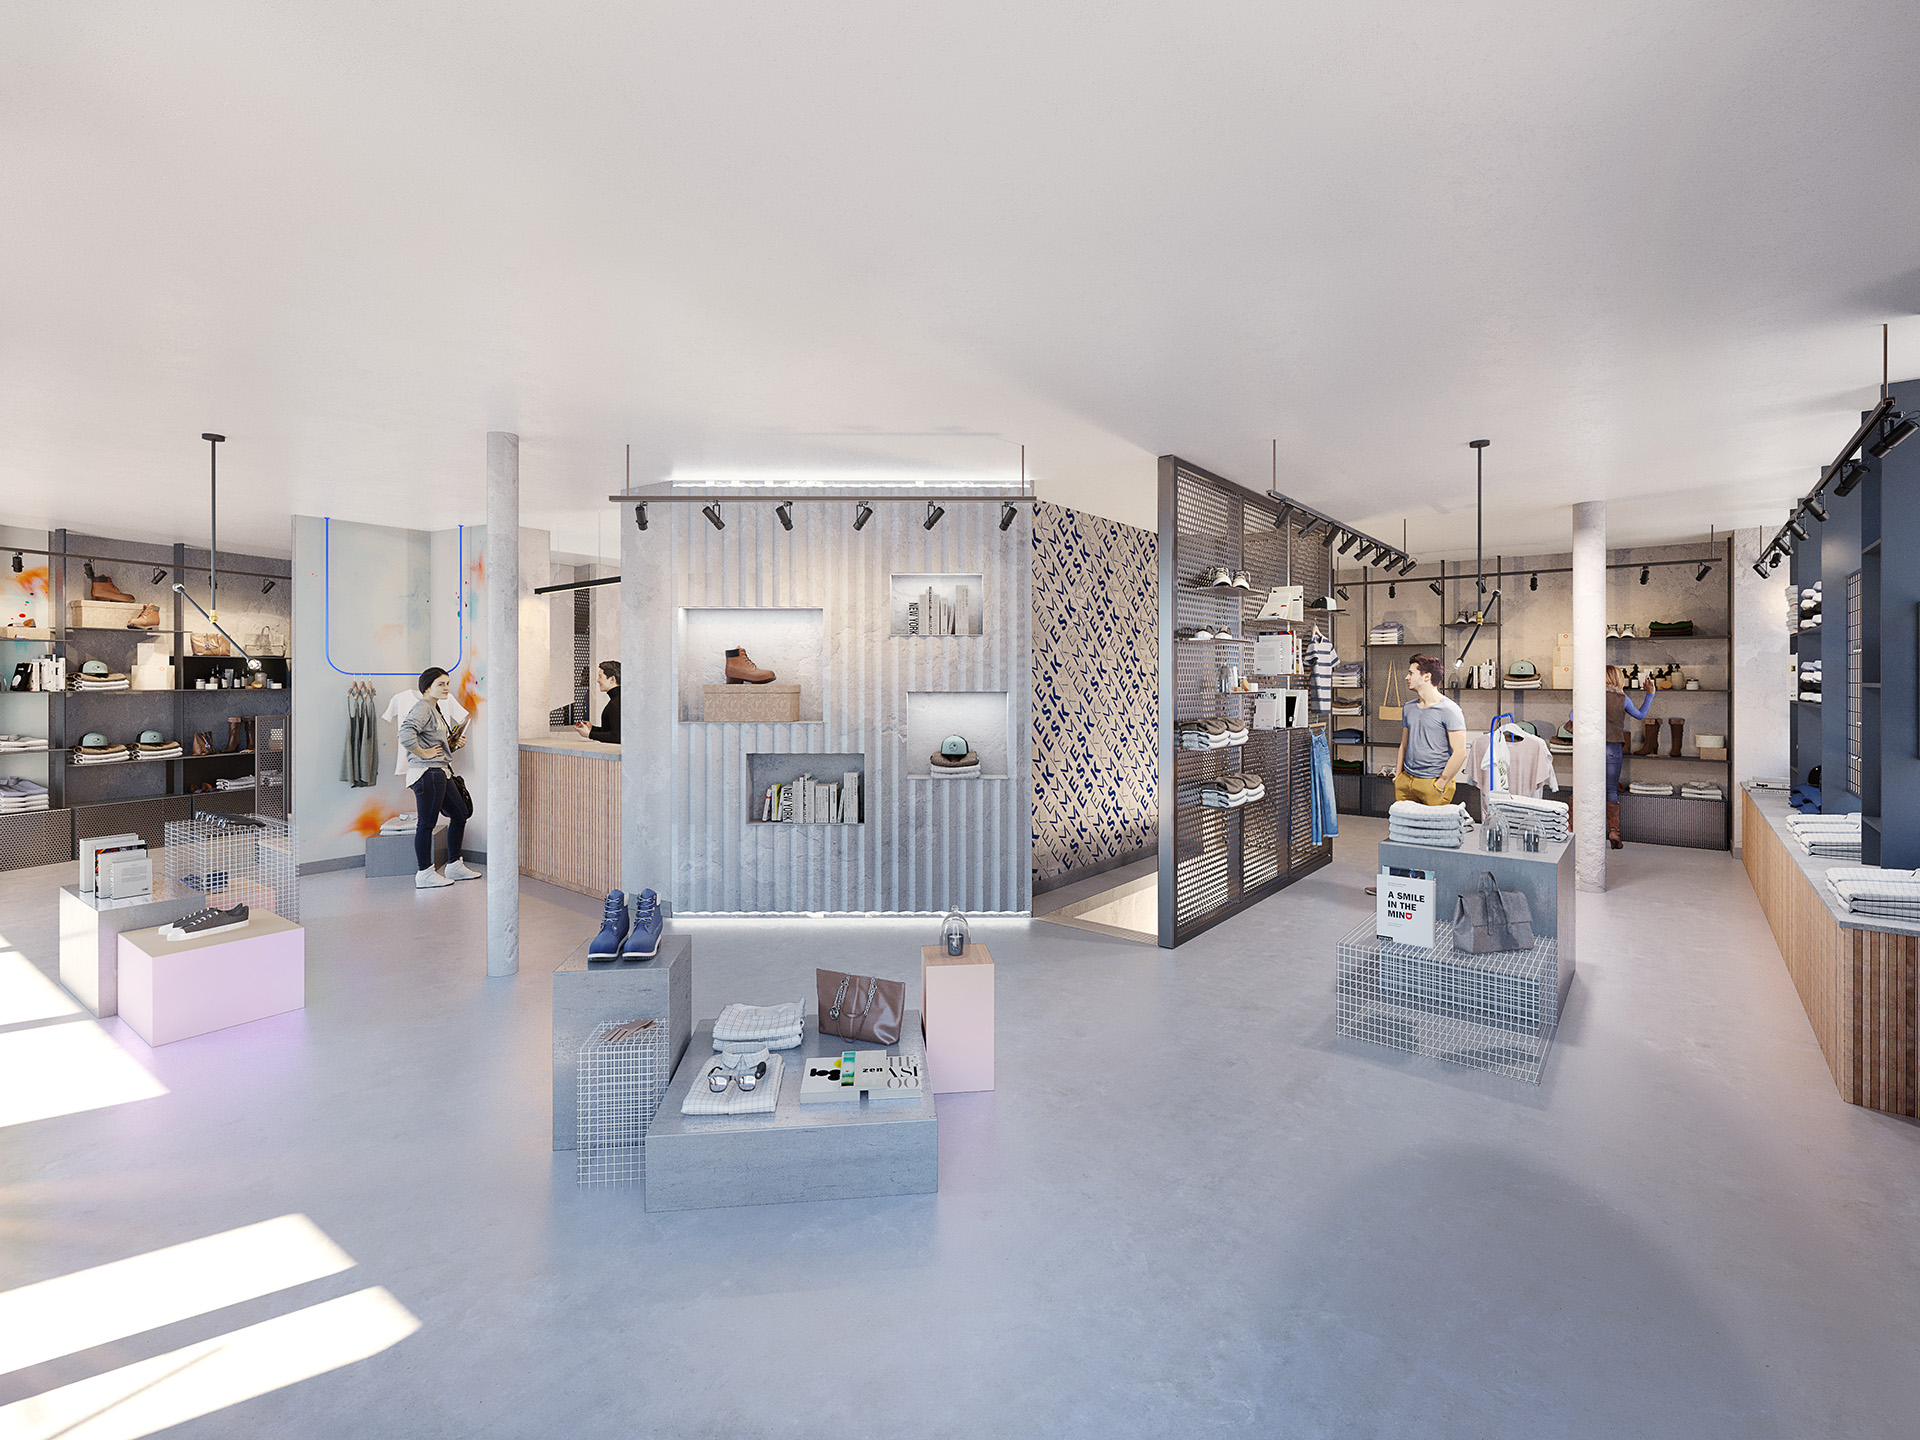 3D image of an industrial and design shoe store